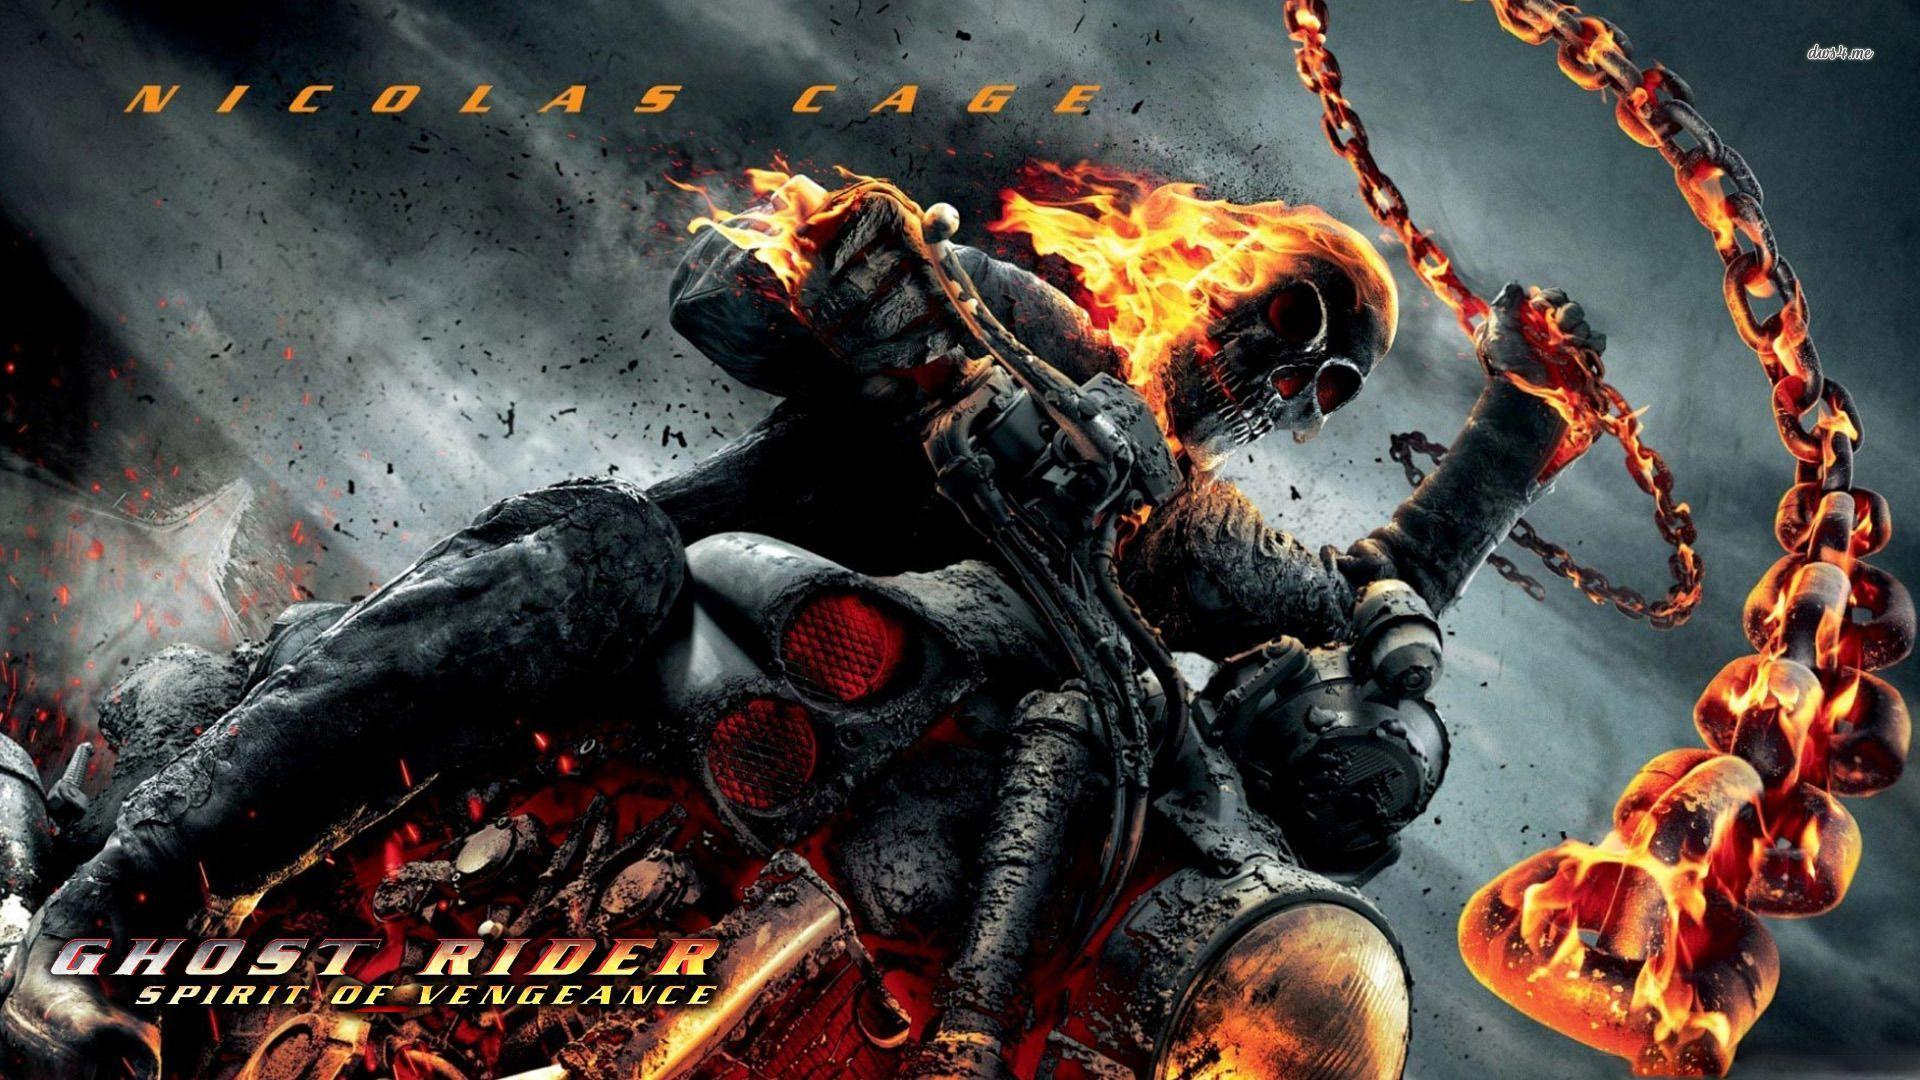 Ghost Rider Photos – Ghost Rider Wallpapers for desktop and mobile